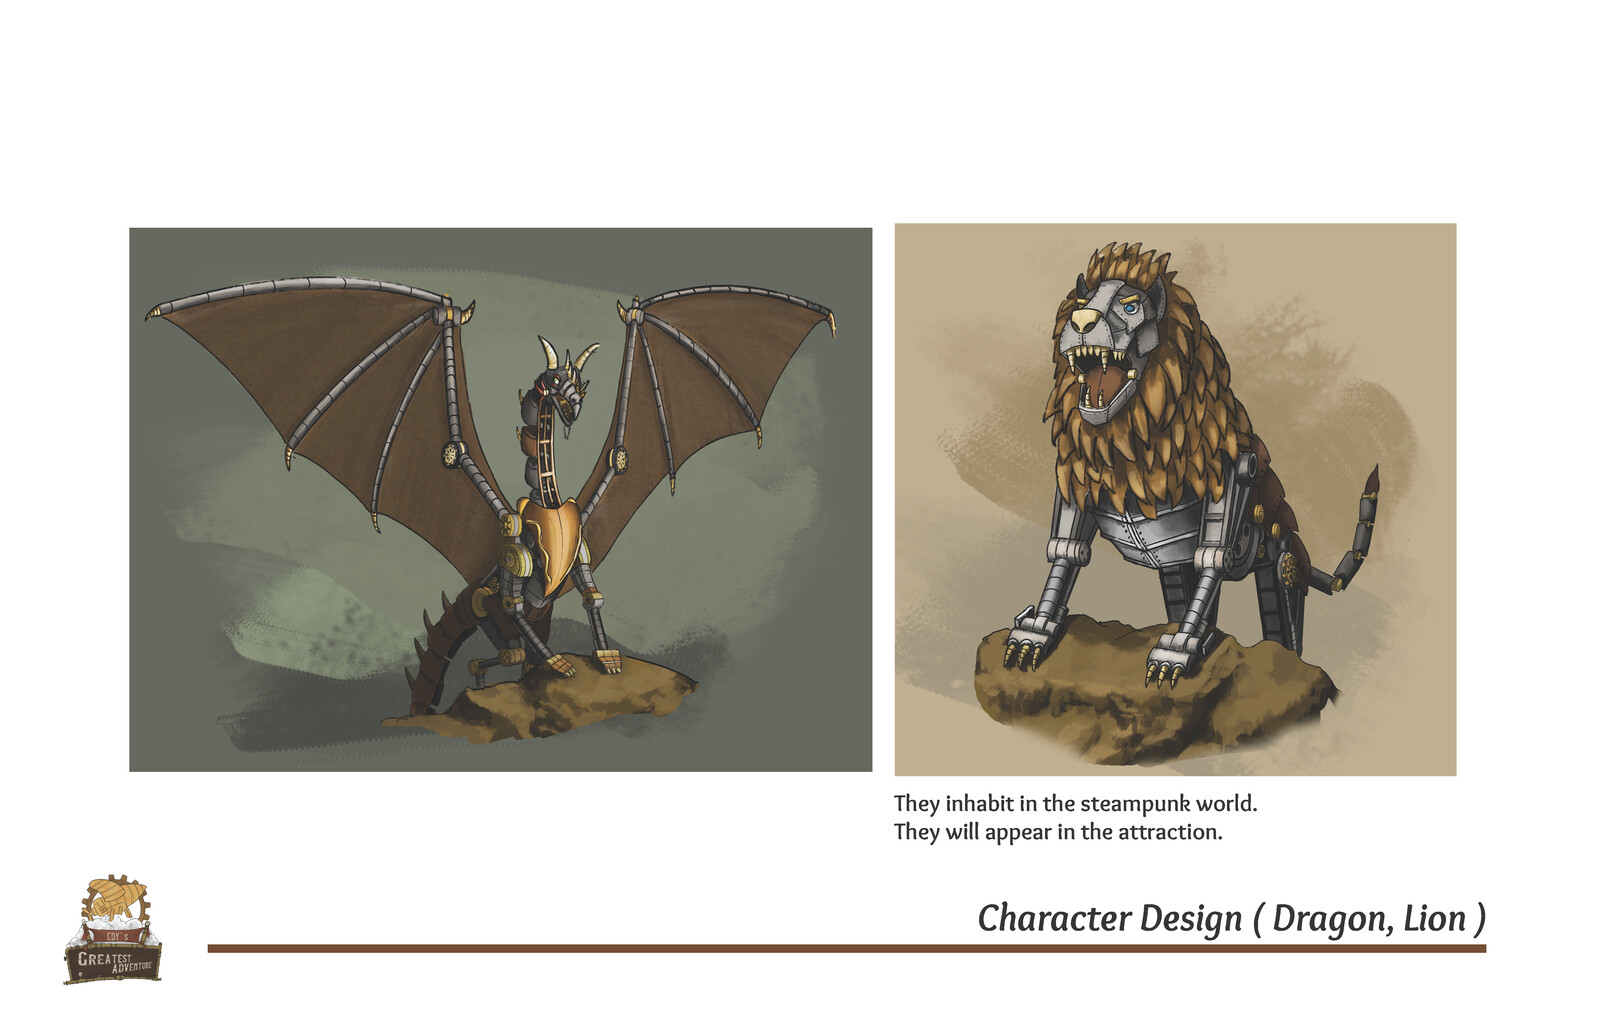 Character Design (Dragon, Lion)